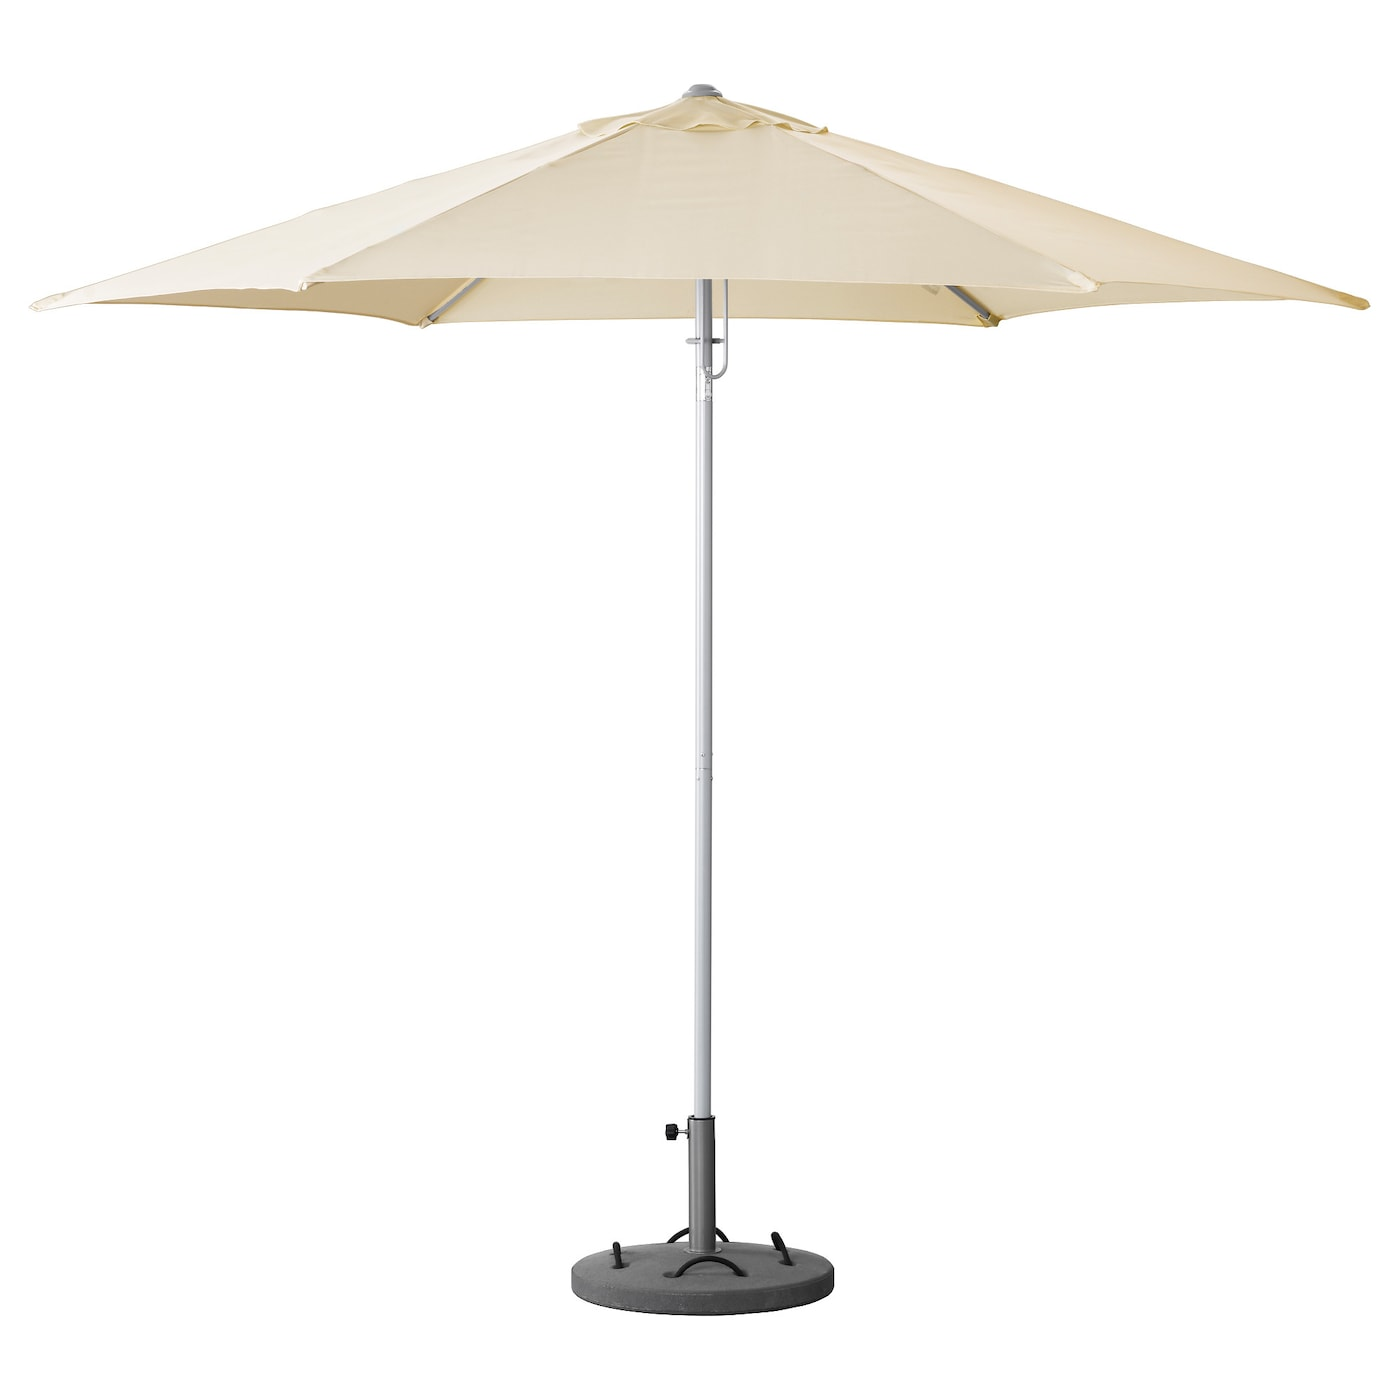 karls parasol avec pied beige l k gris ikea. Black Bedroom Furniture Sets. Home Design Ideas